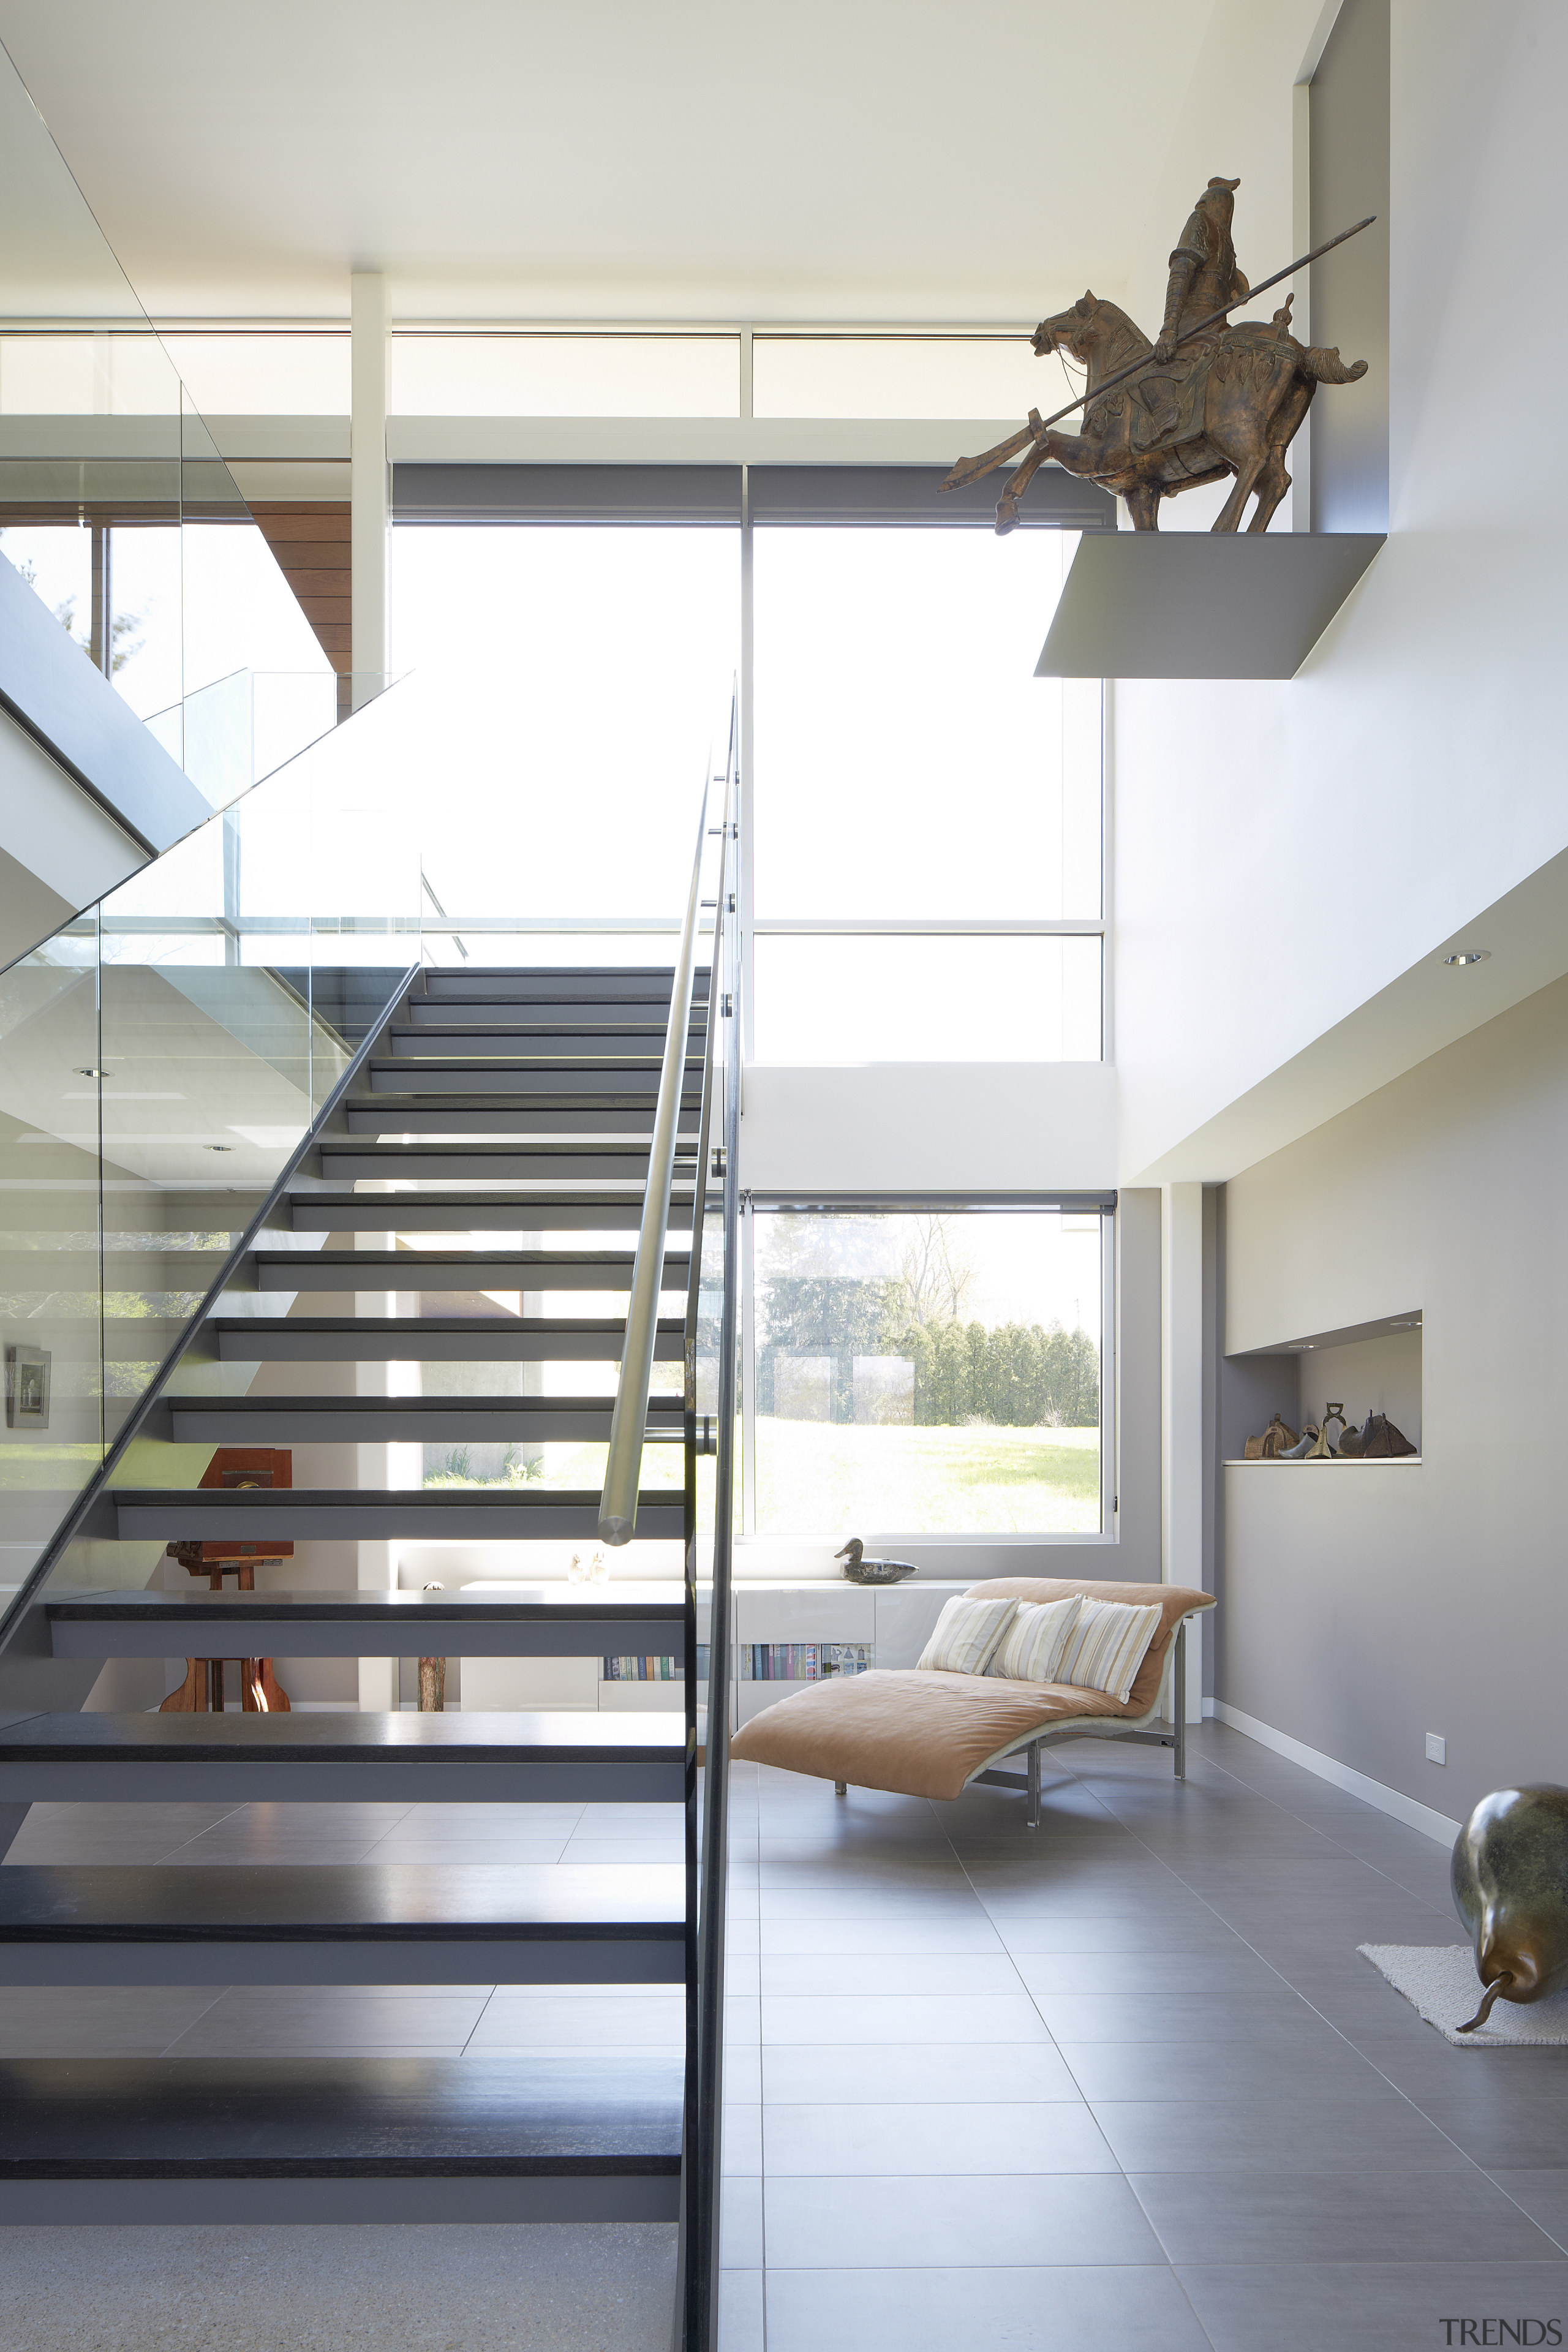 A double-height void adds drama and transparency to architecture, daylighting, floor, handrail, home, house, interior design, loft, product design, stairs, white, gray